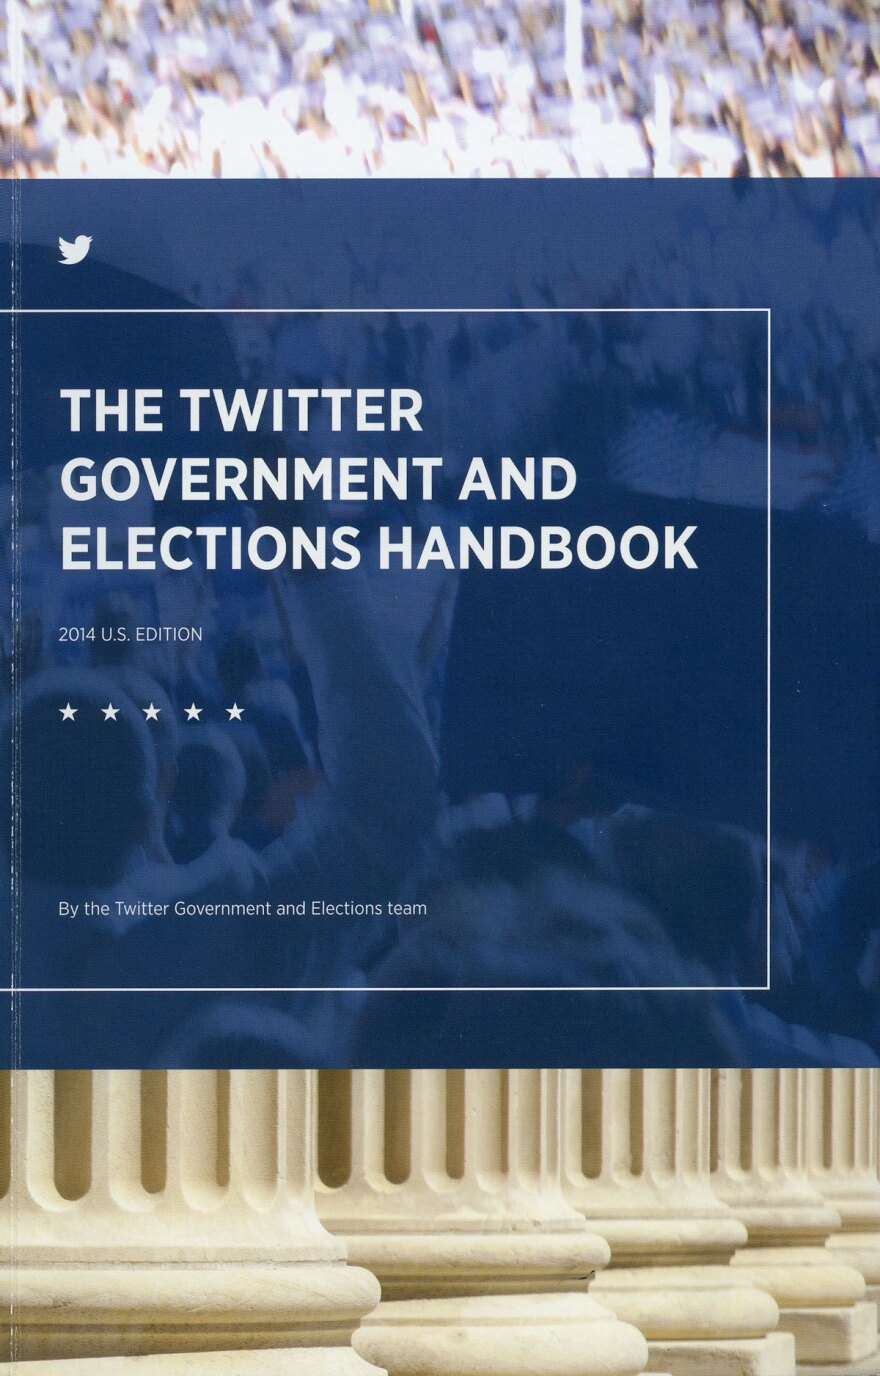 The cover of Twitter's manual for governments and elections.